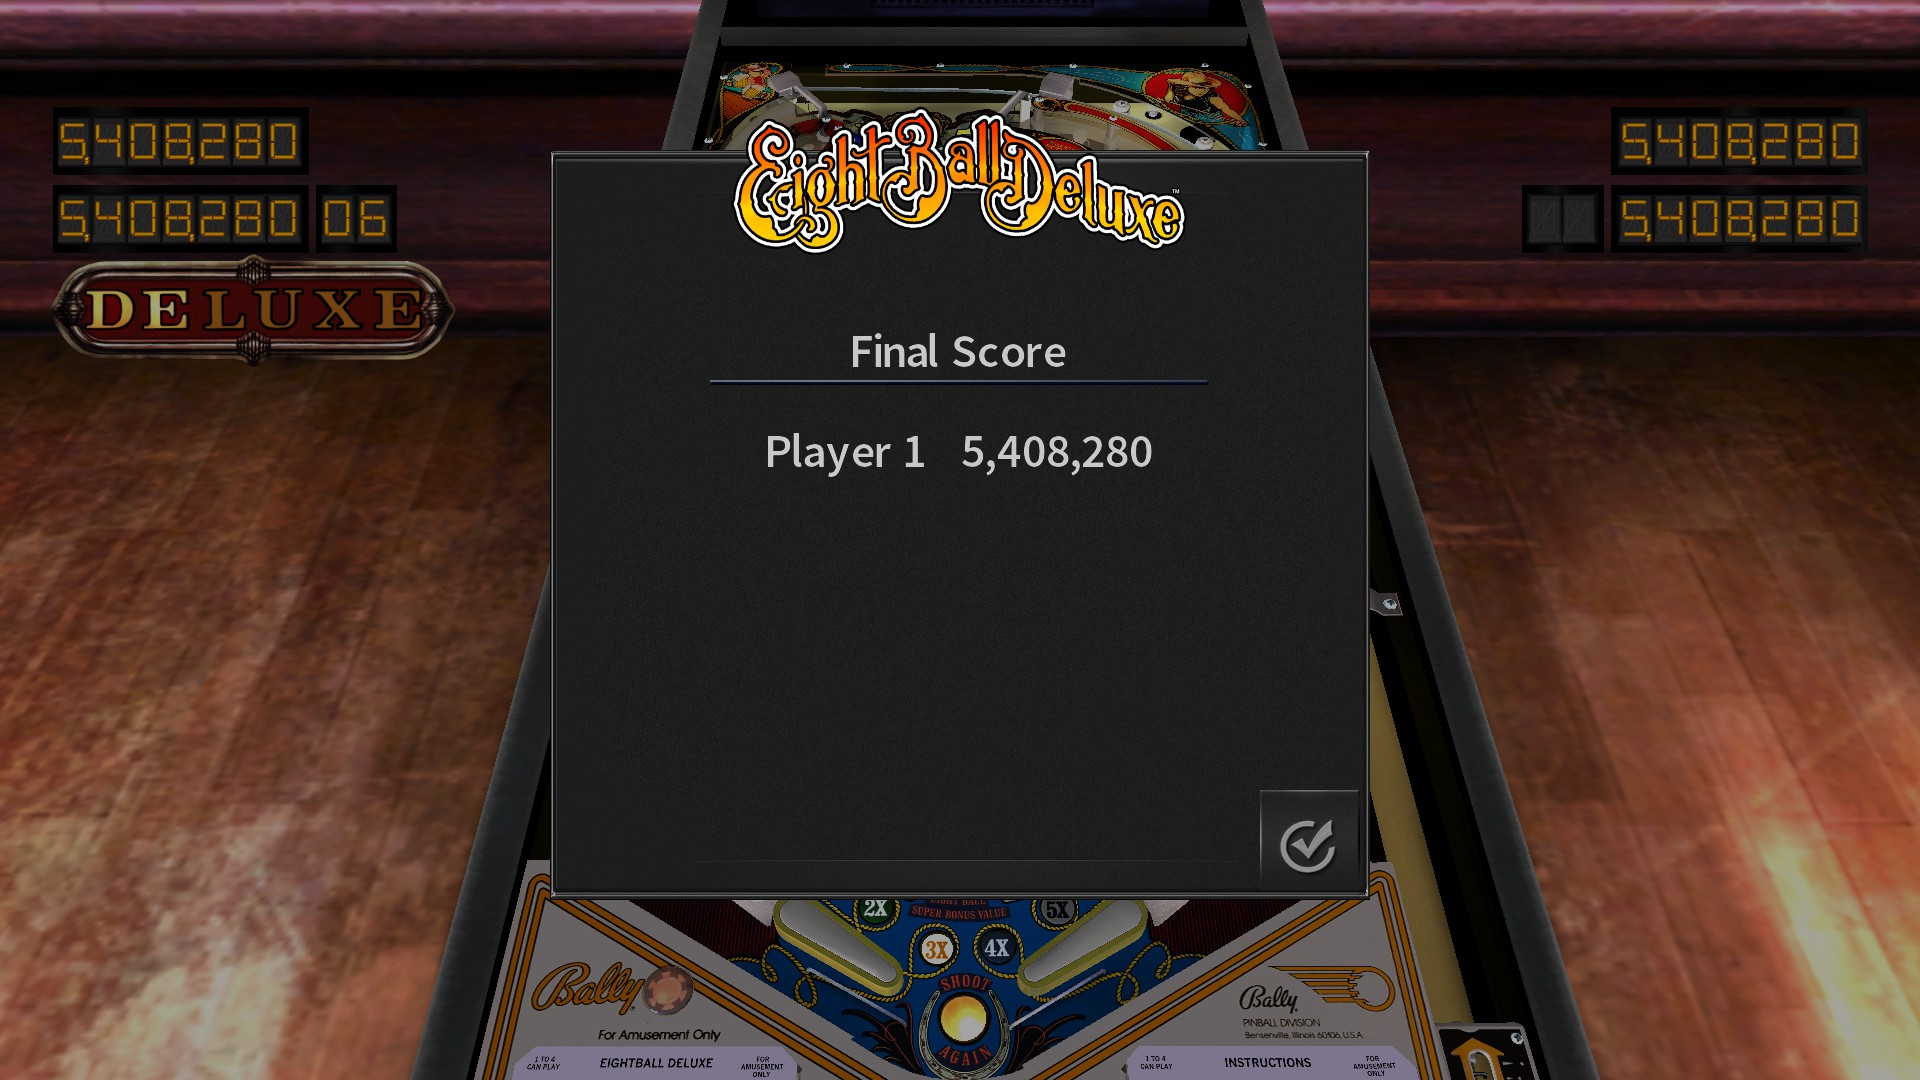 TheTrickster: Pinball Arcade: Eight Ball Deluxe (PC) 5,408,280 points on 2016-08-31 05:21:05